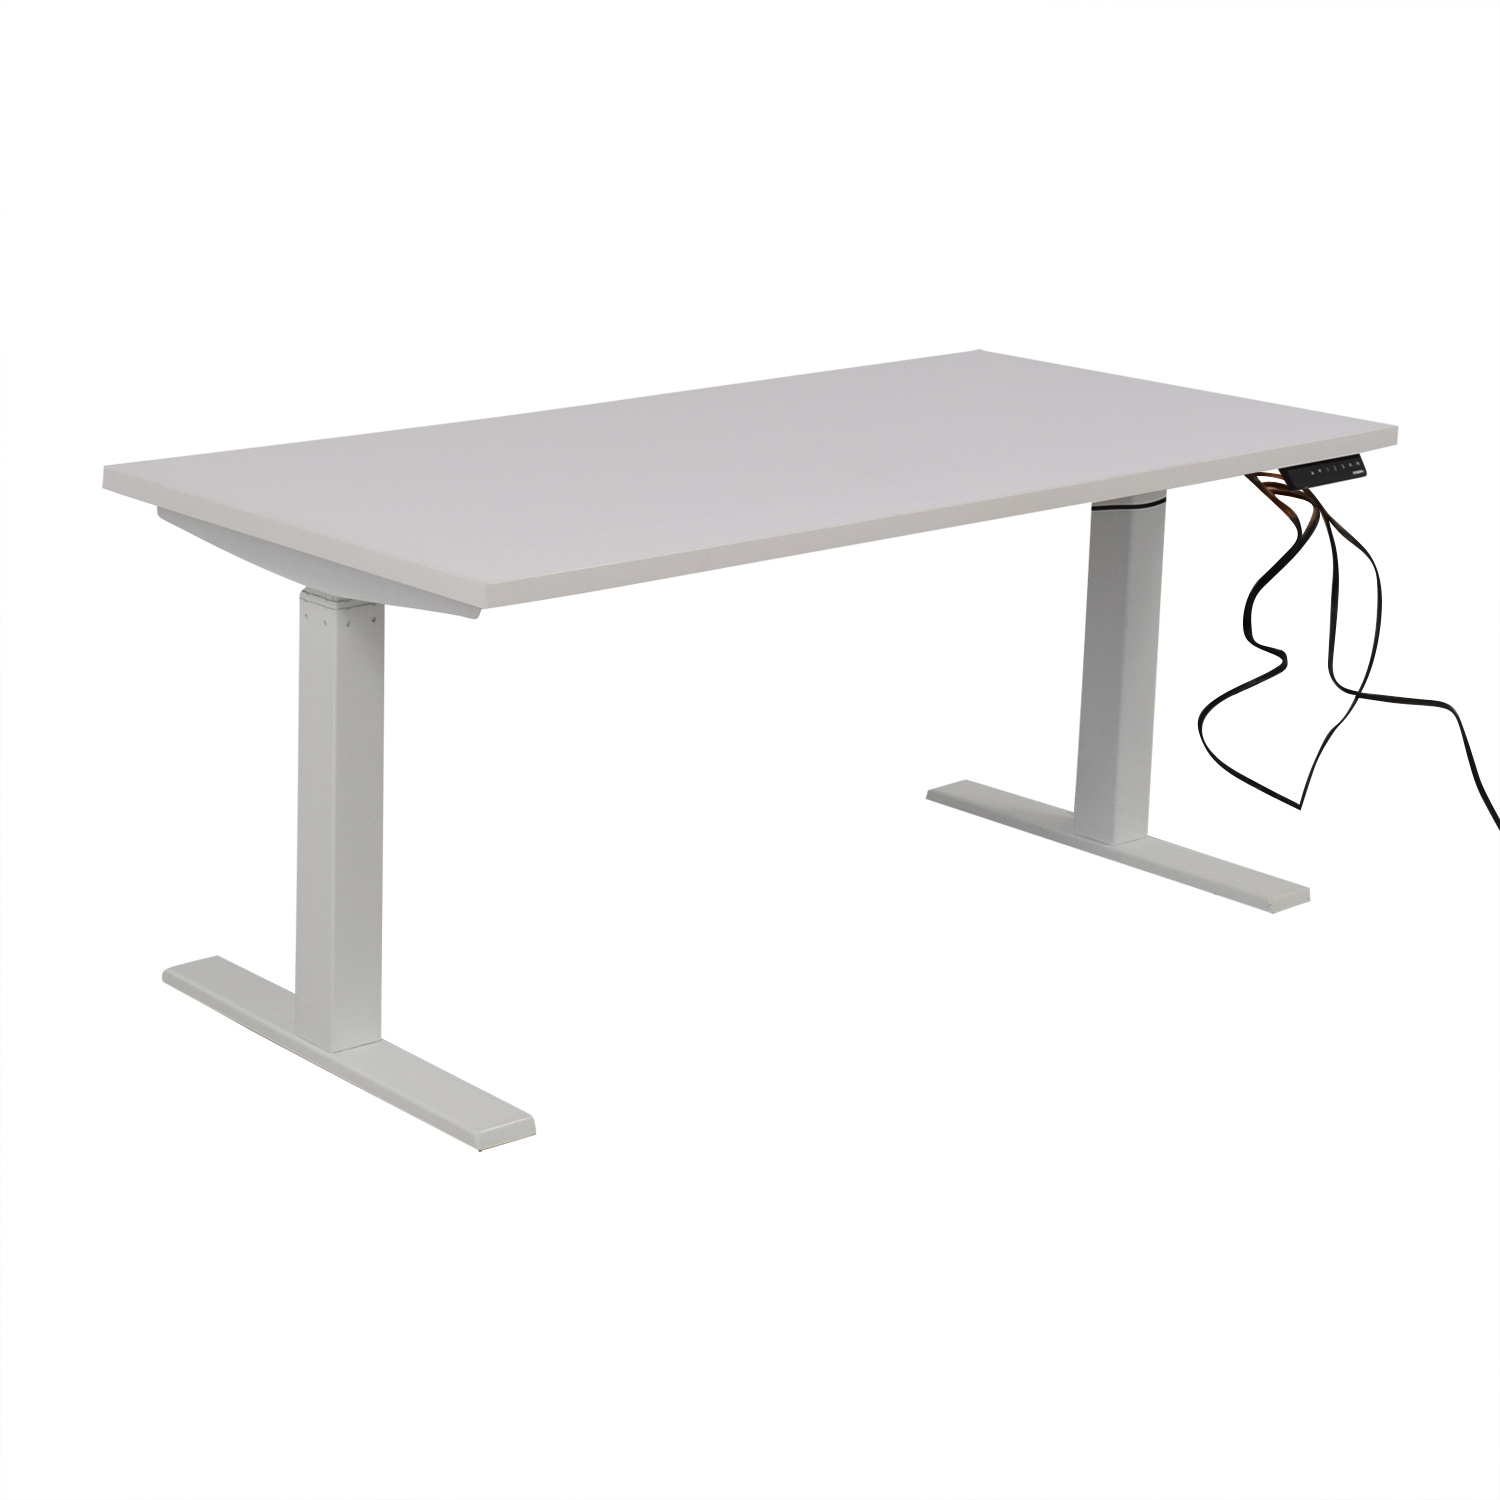 shop Poppin Series L Adjustable Height Single Desk Poppin Tables